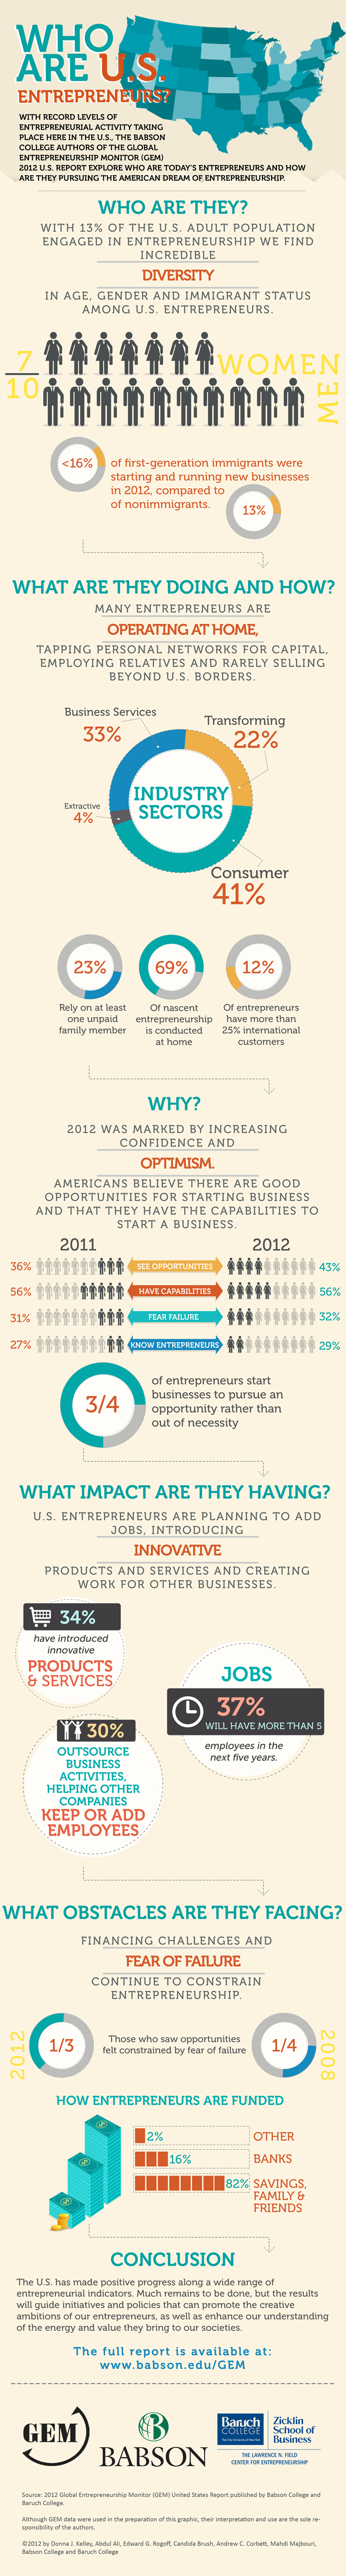 Entrepreneur-Statistics-and-Demographics